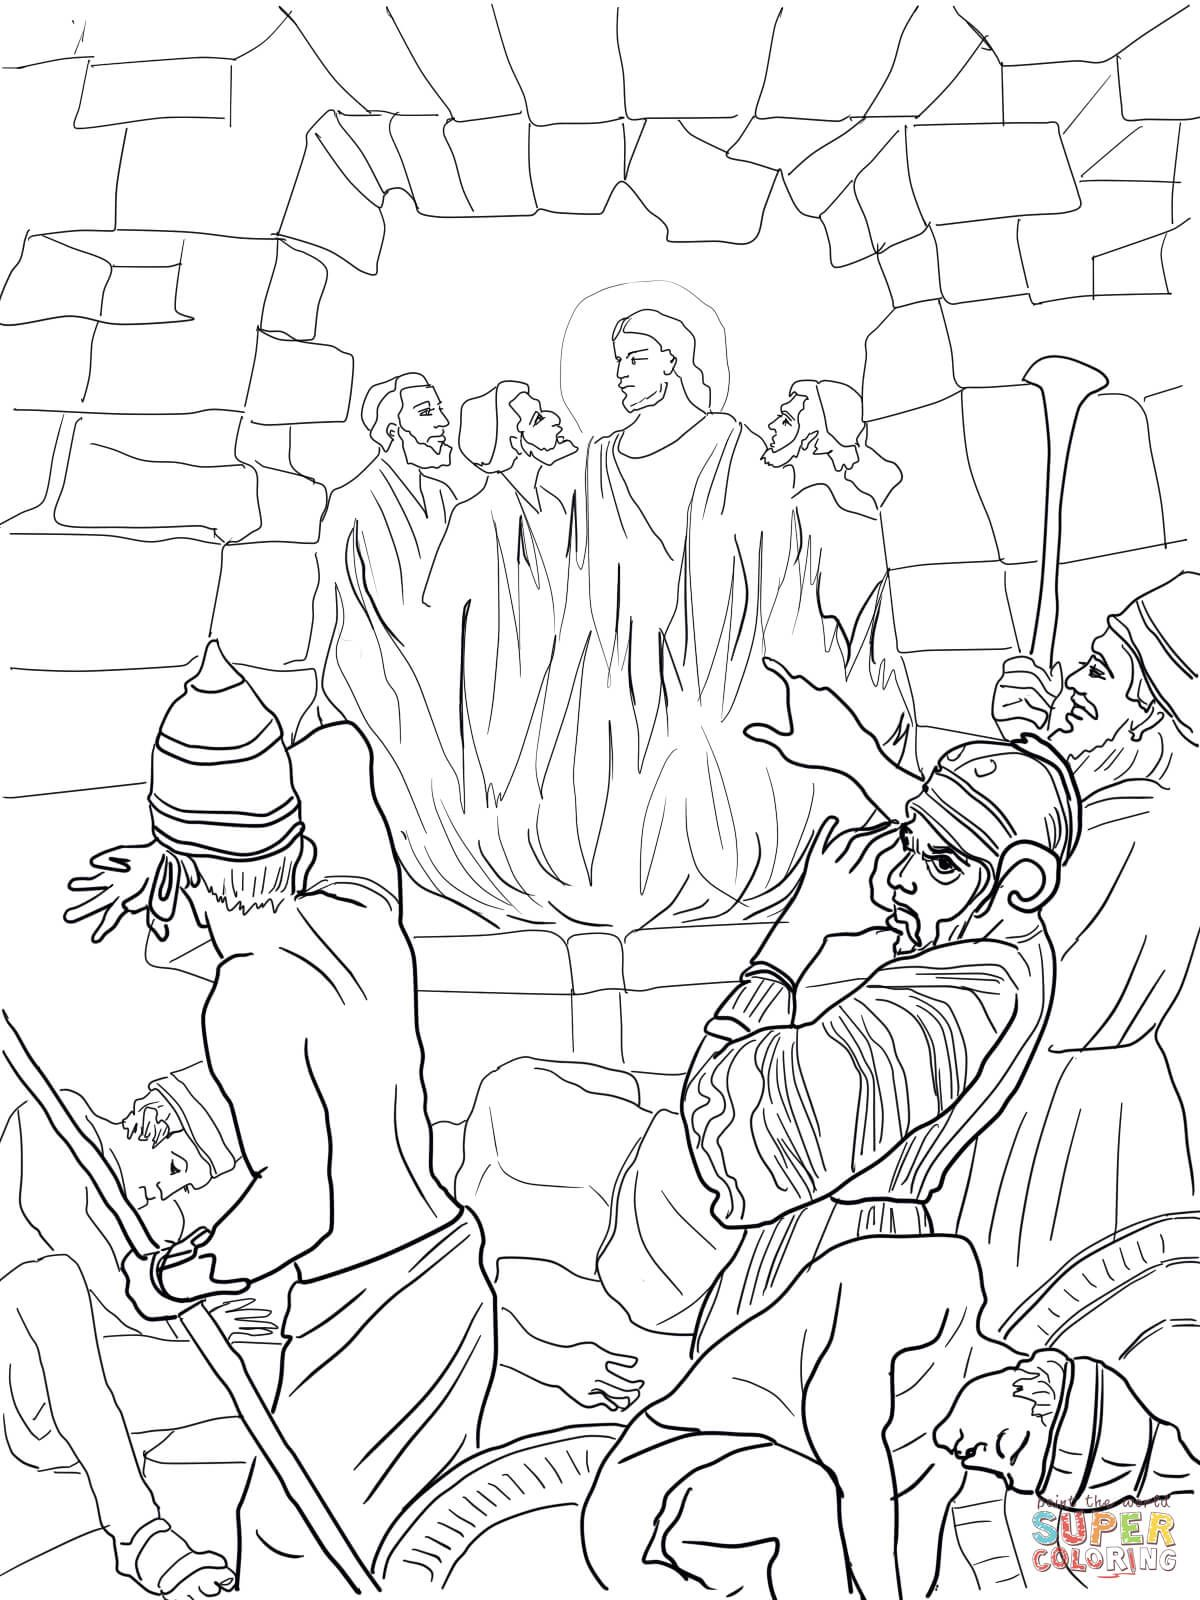 Shadrach, Meshach and Abednego in the Fiery Furnace